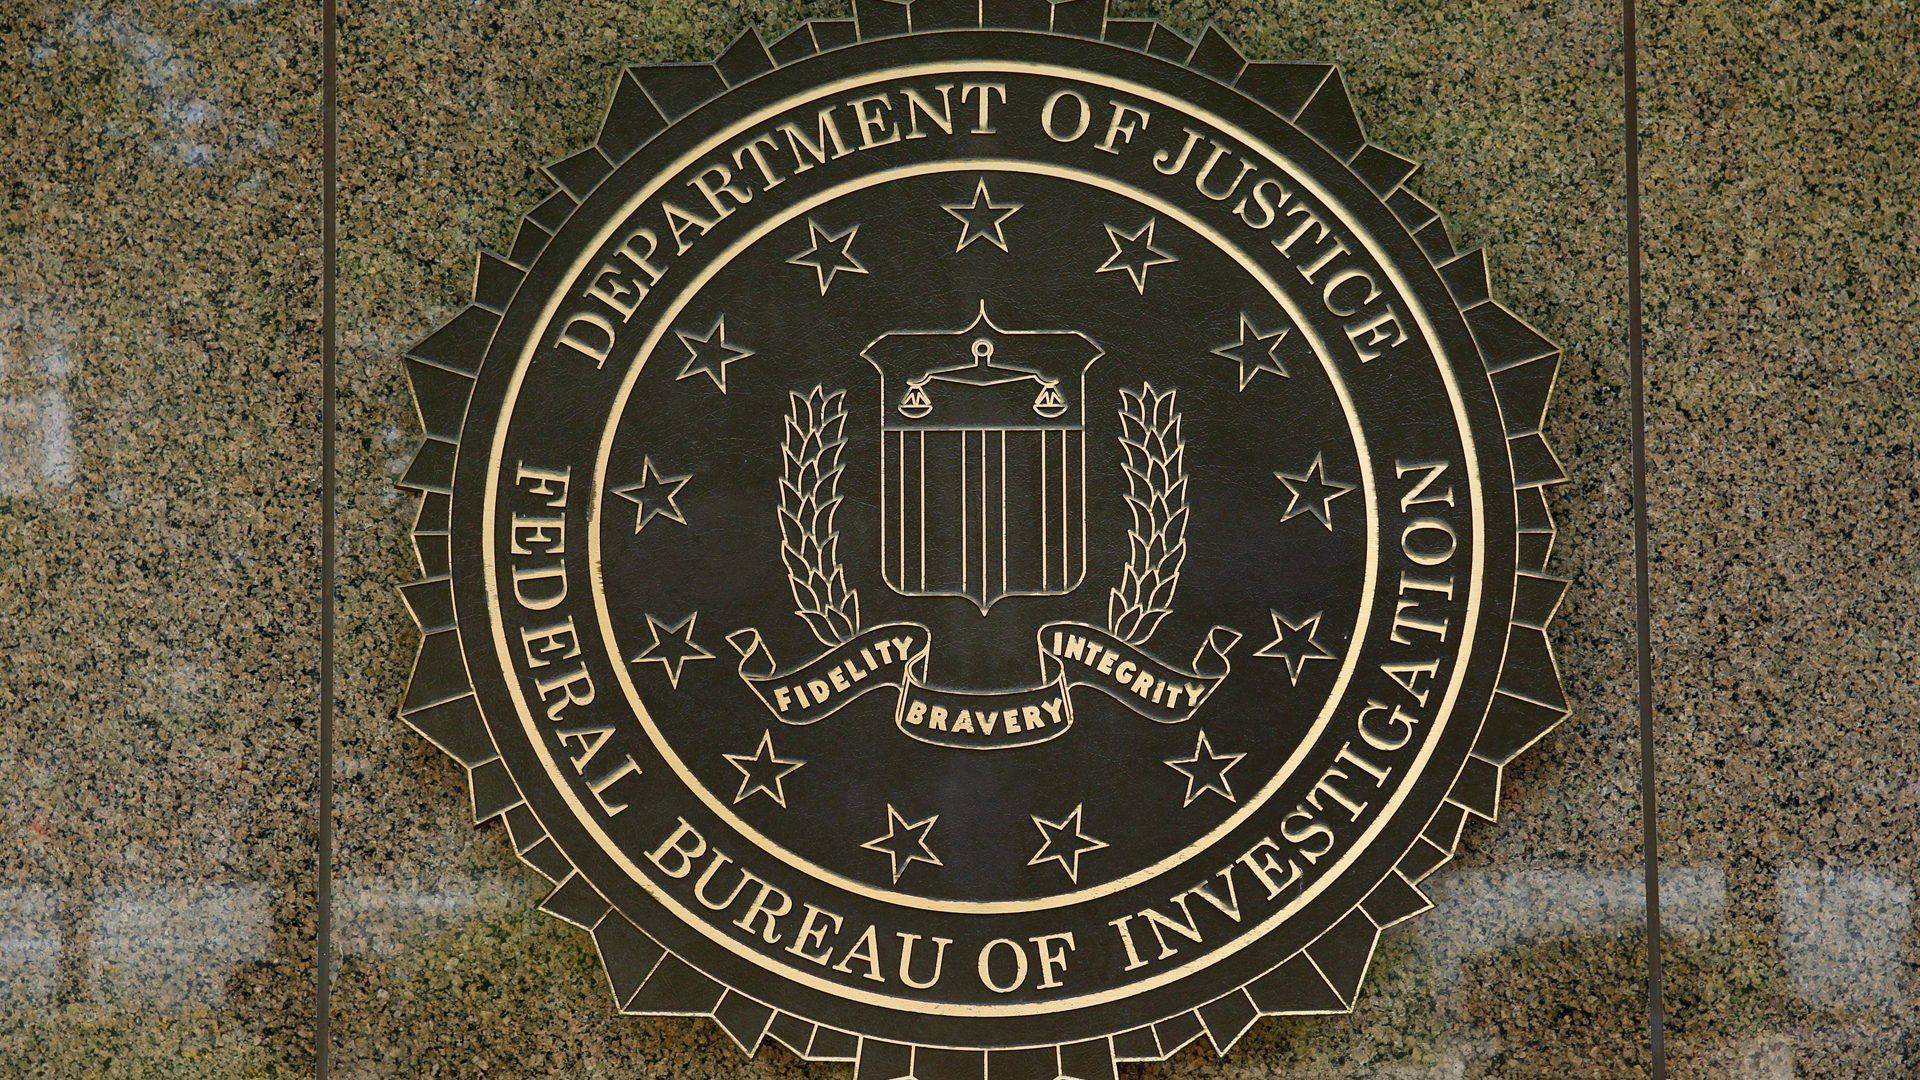 The FBI seal is seen outside the headquarters building in Washington, DC on July 5, 2016. (Credit: Yuri Gripas/AFP/Getty Images)